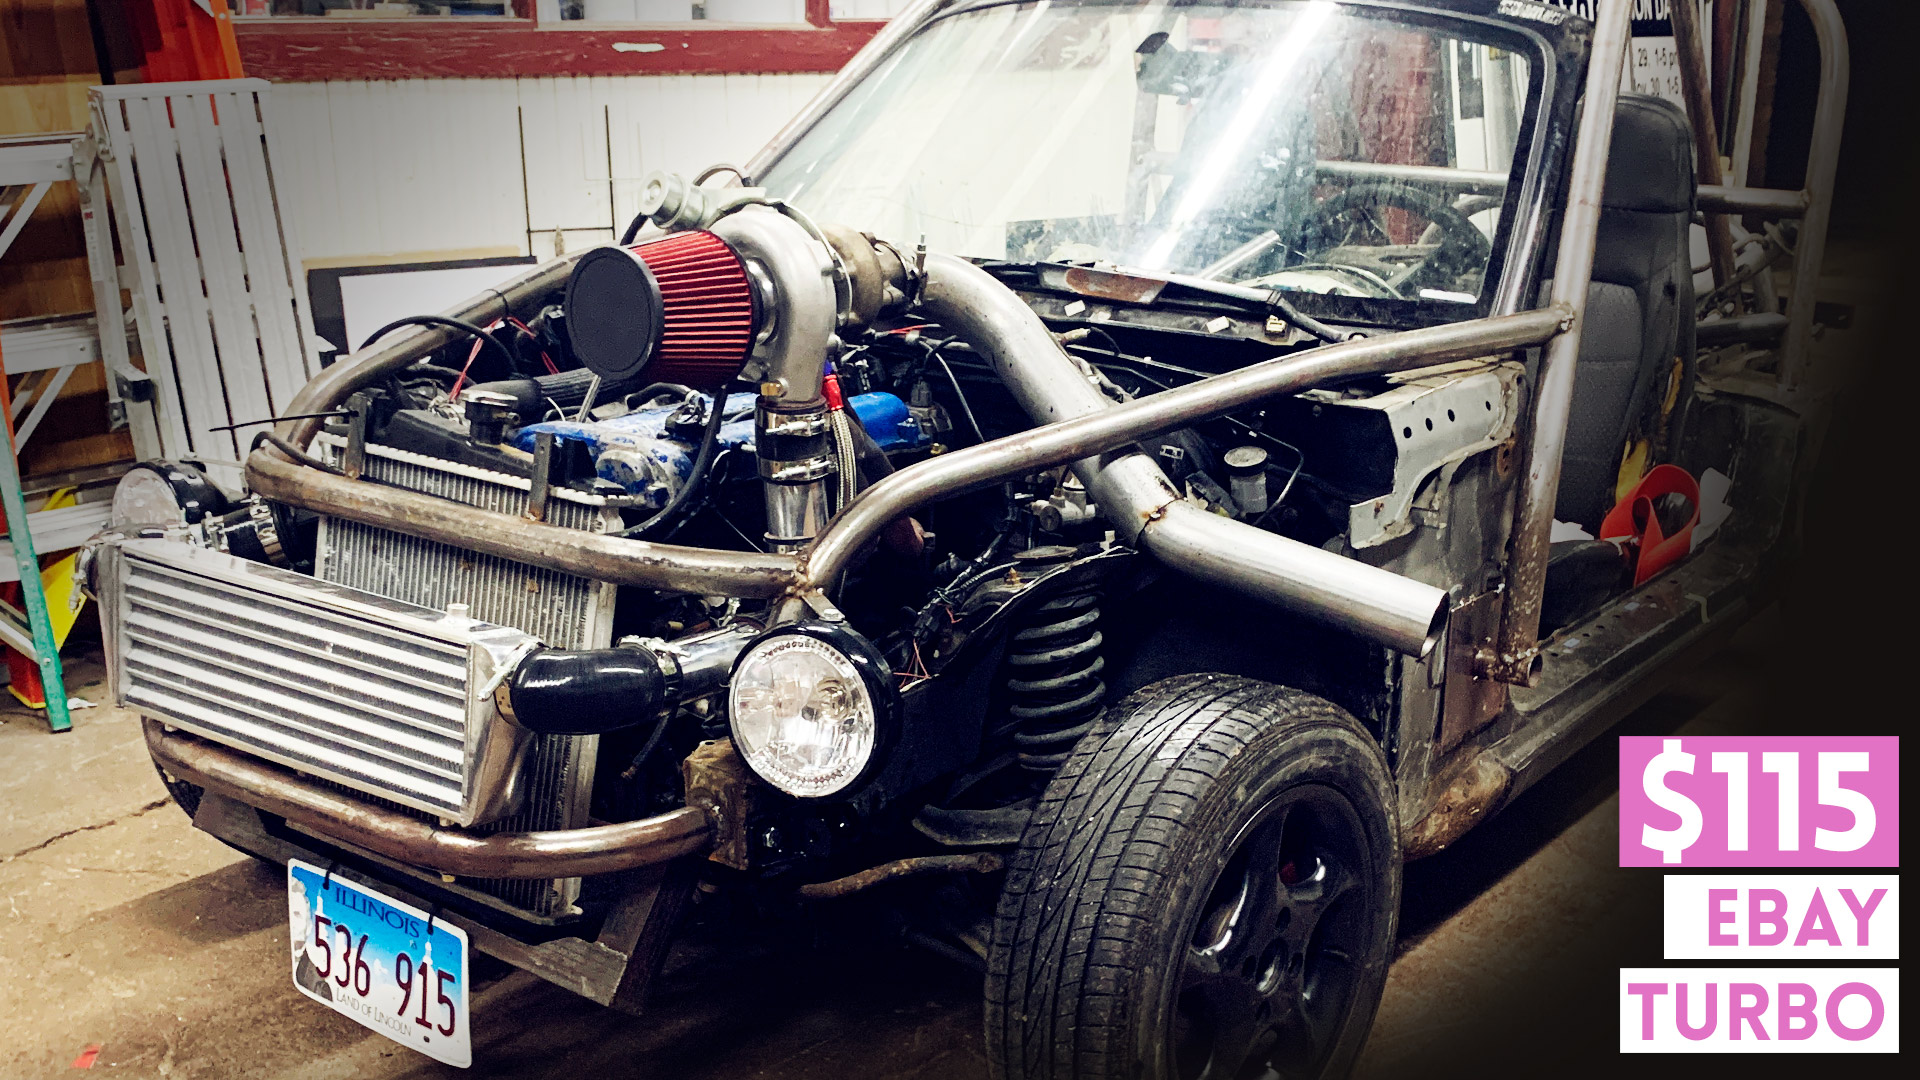 Cheap Ebay Turbos: How to Choose One for Your Project Car